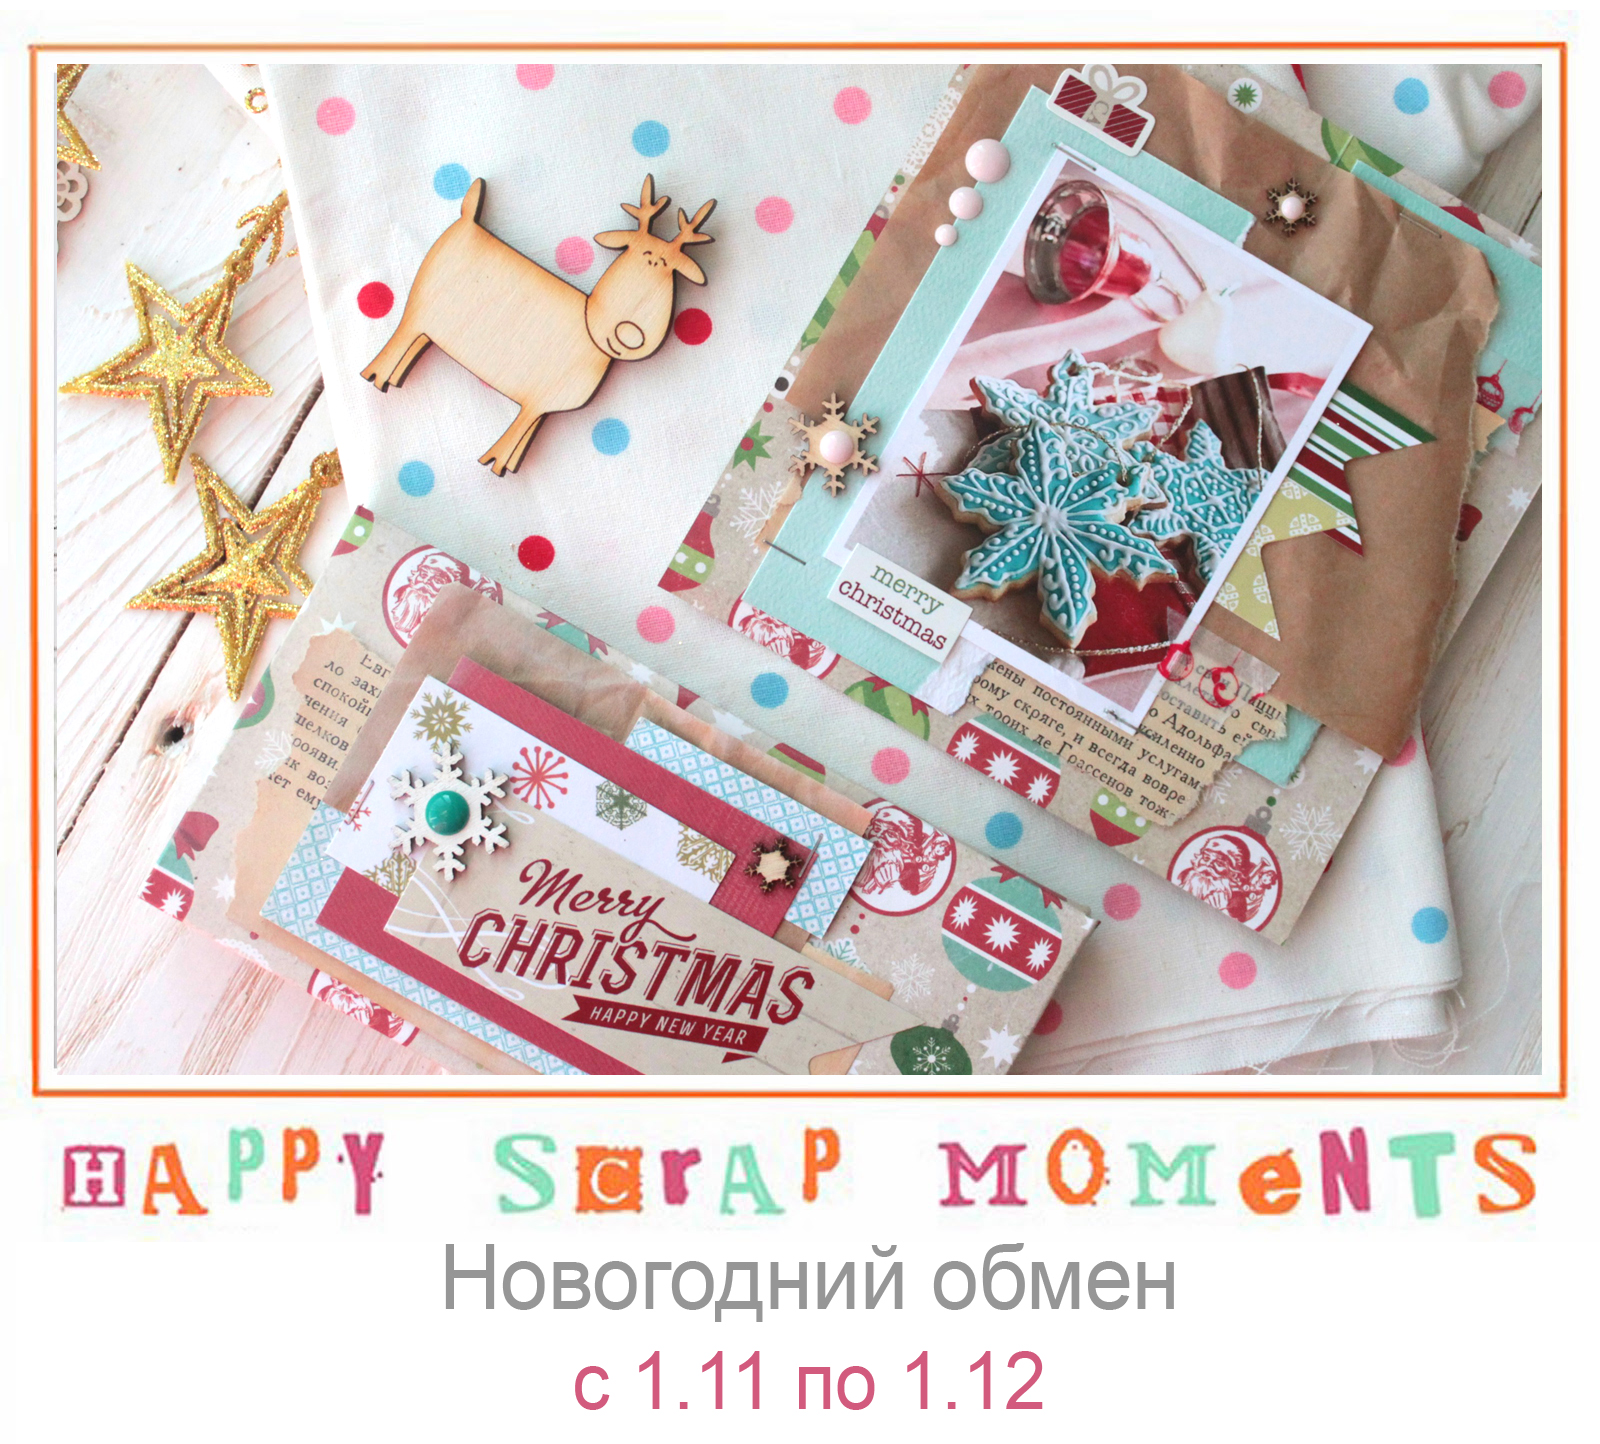 http://happyscrapmoments.blogspot.ru/2014/10/blog-post_31.html